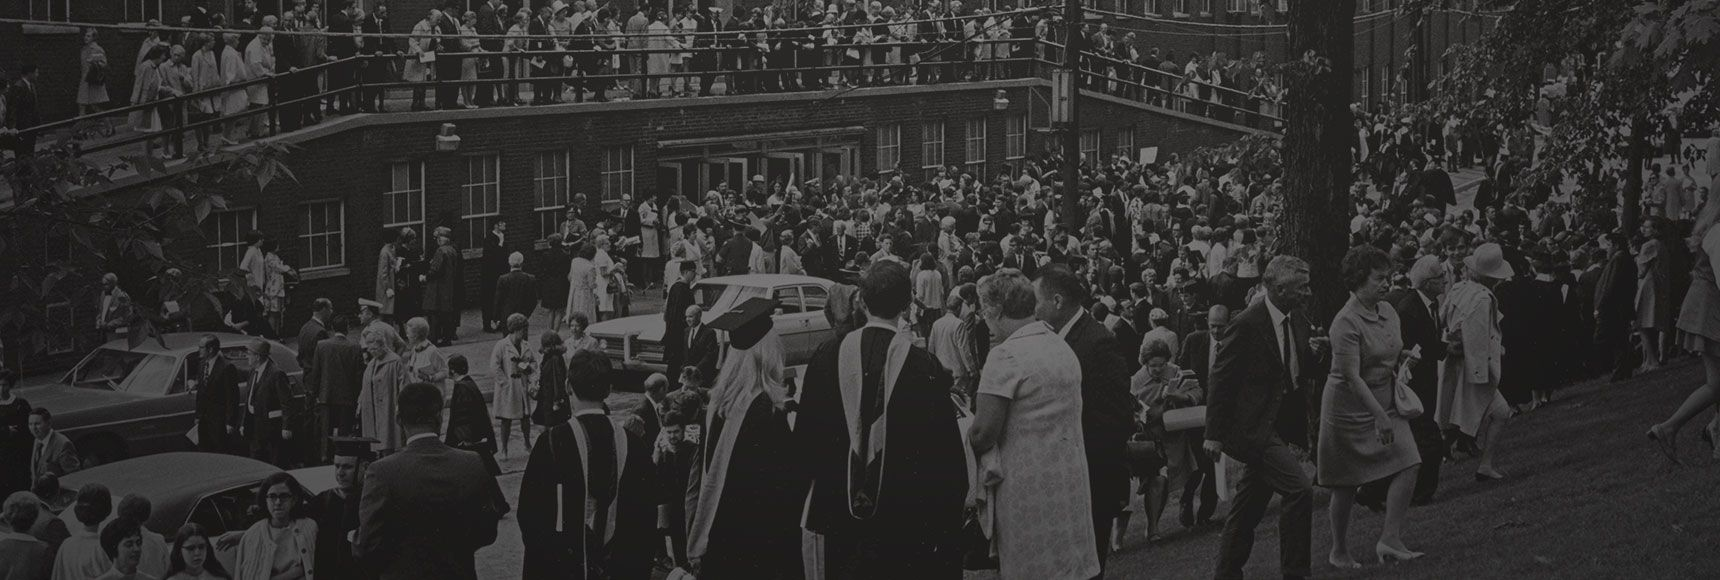 commencement in the 1960s